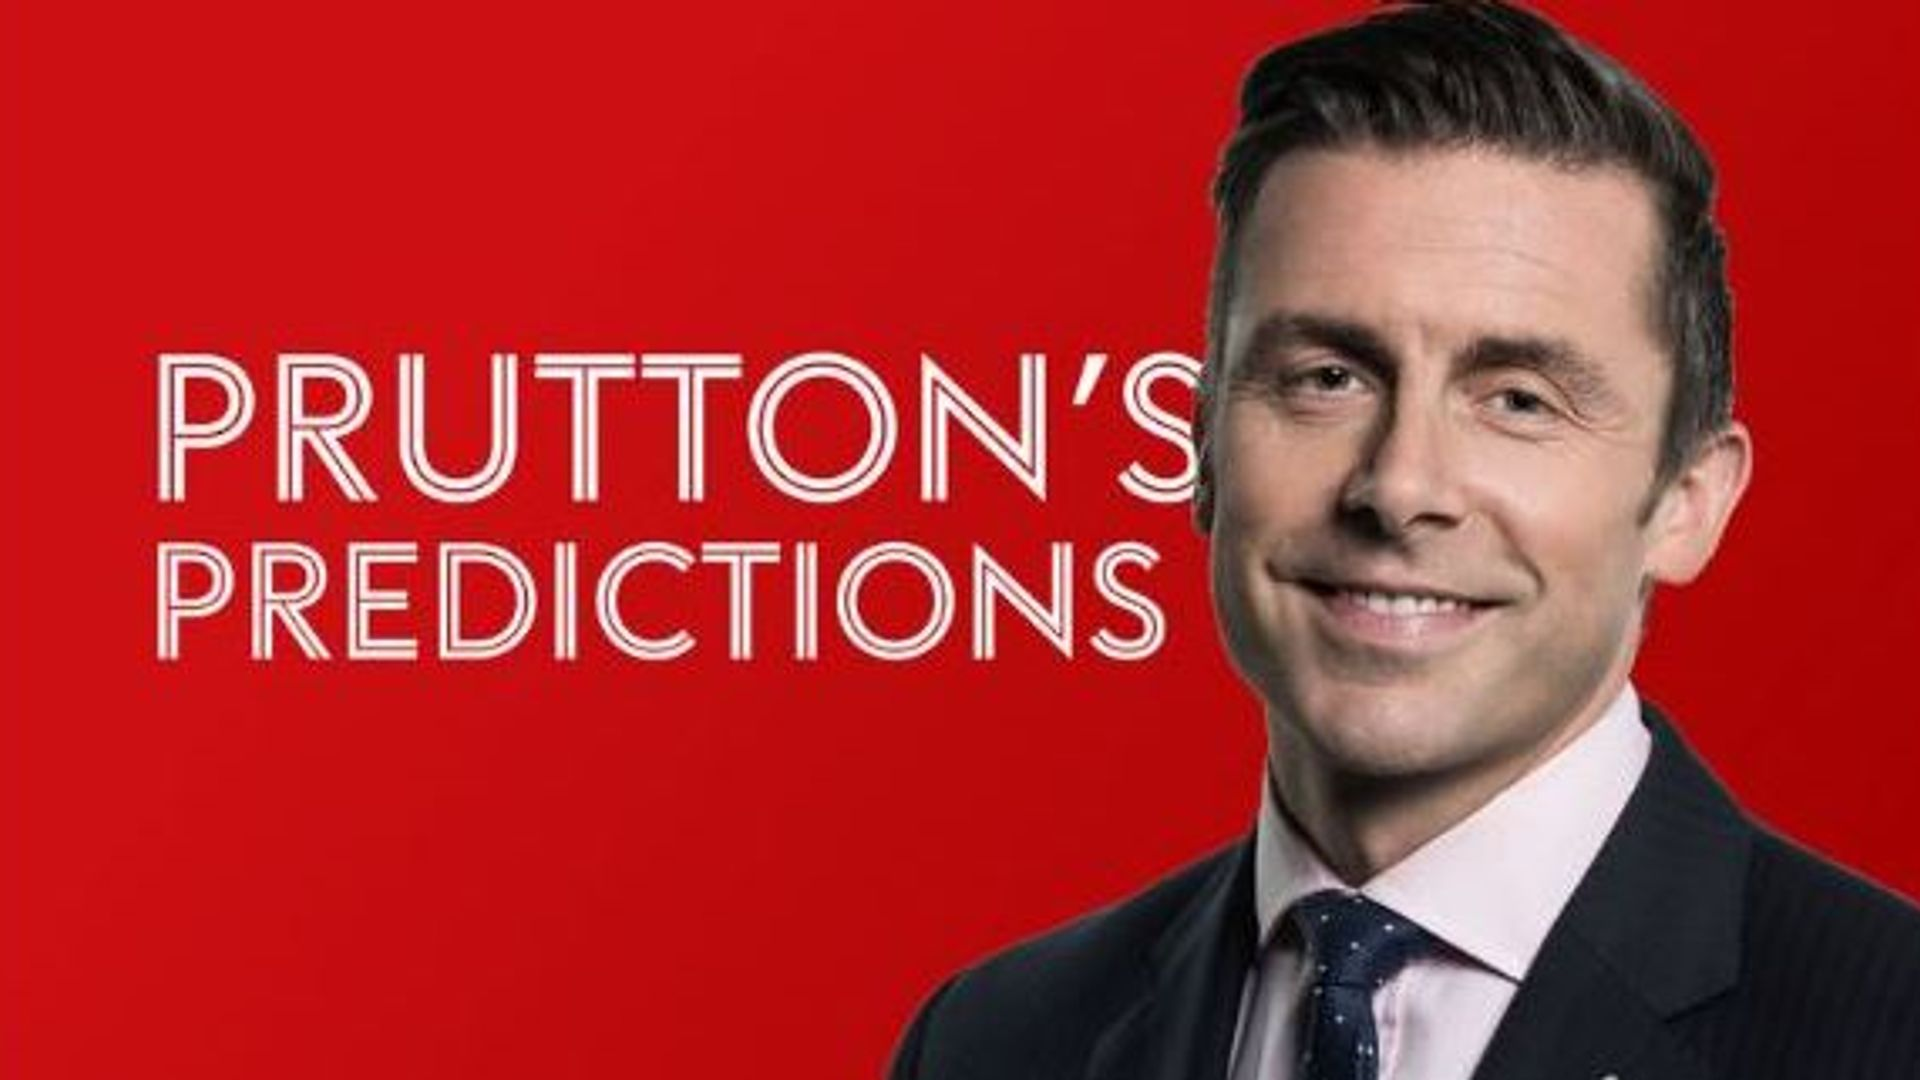 Prutton's Championship Final Day predictions